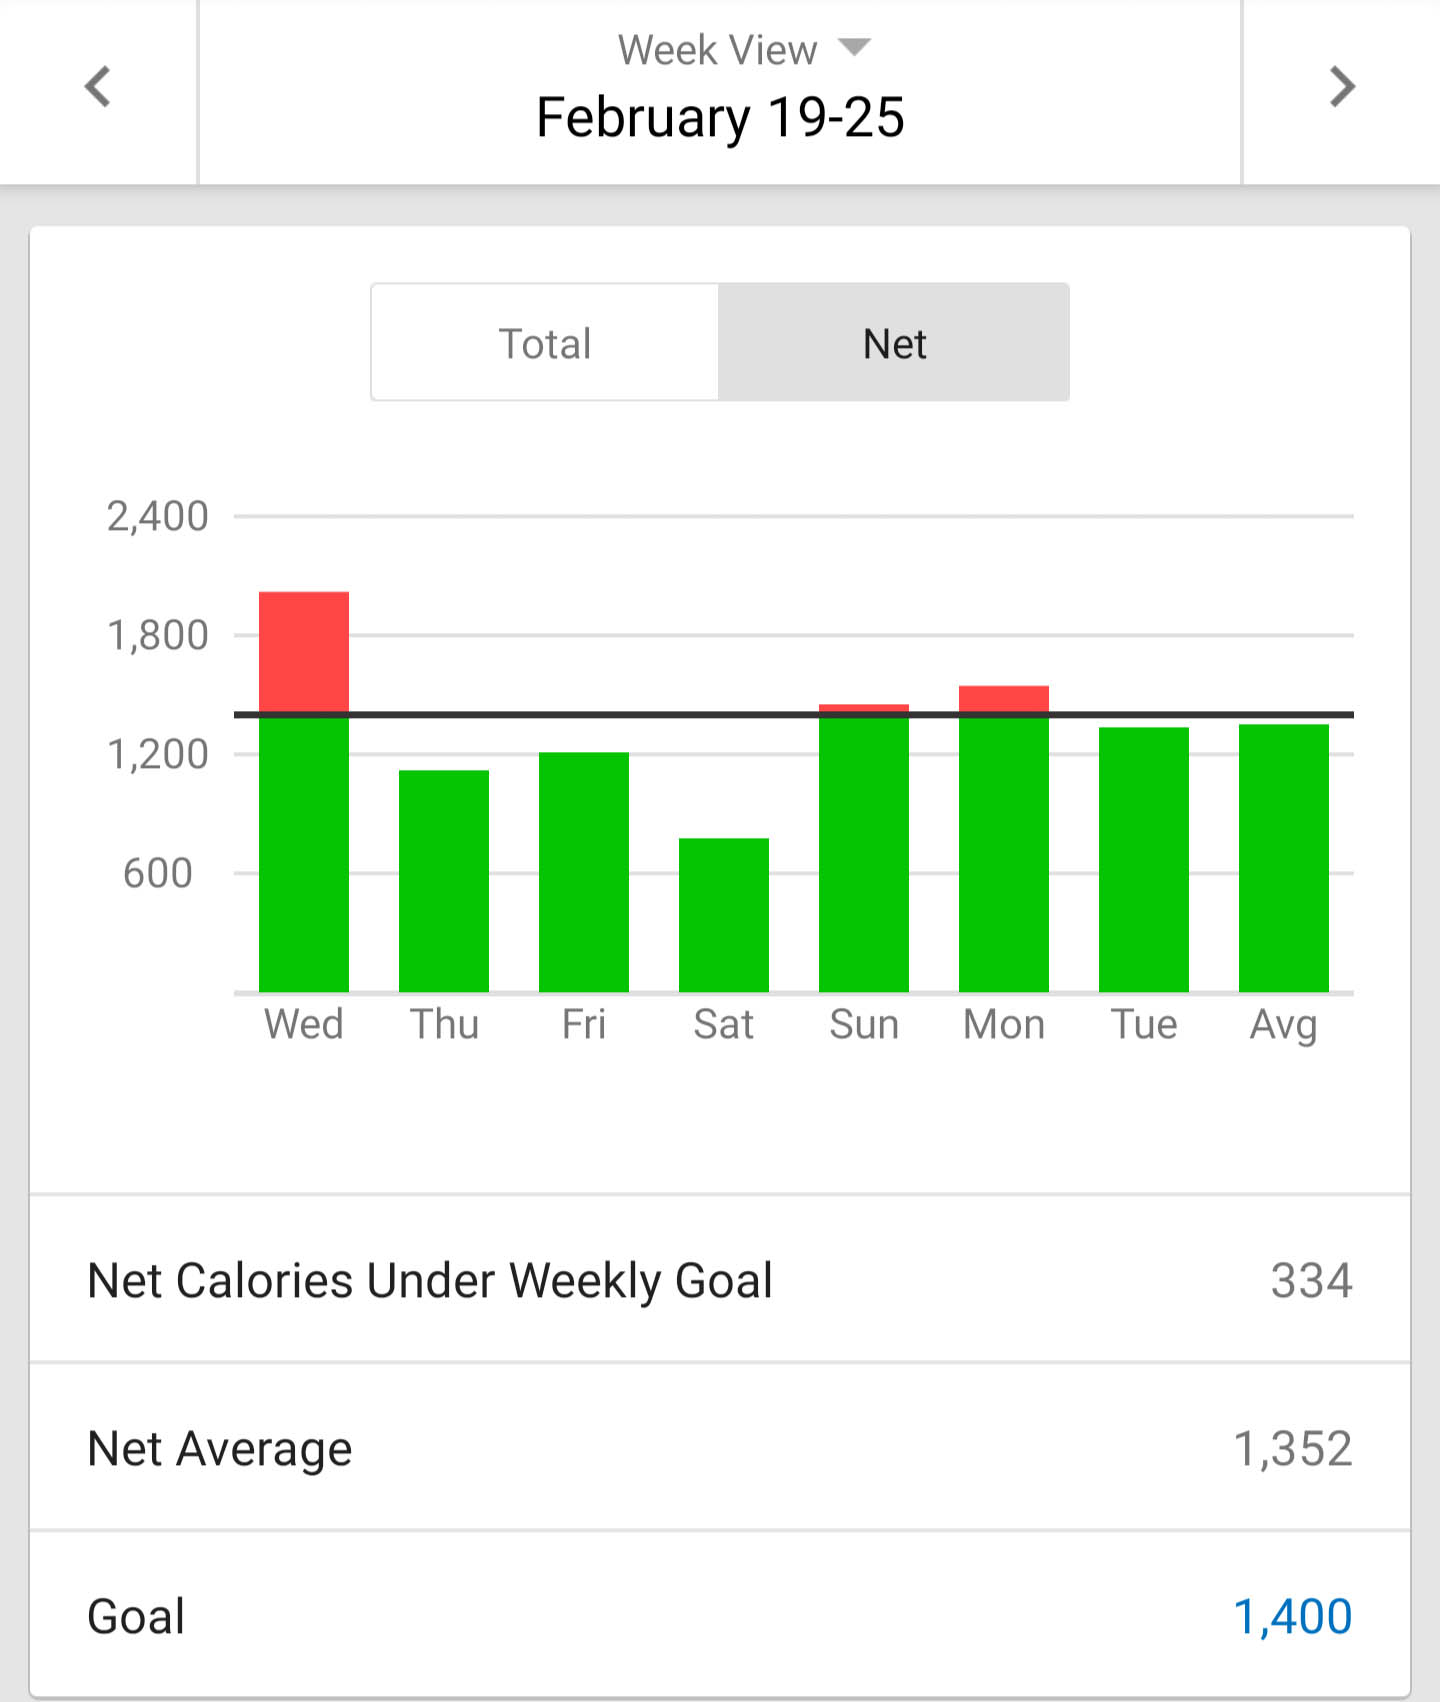 naina.co, naina redhu, body evolution, body consciousness, calorie counting, counting calories, eating well, health, wealth, body, weight loss, healthy body, fitness, wellness, eyesforlifestyle, mapmyfitness, calorie intake, water intake